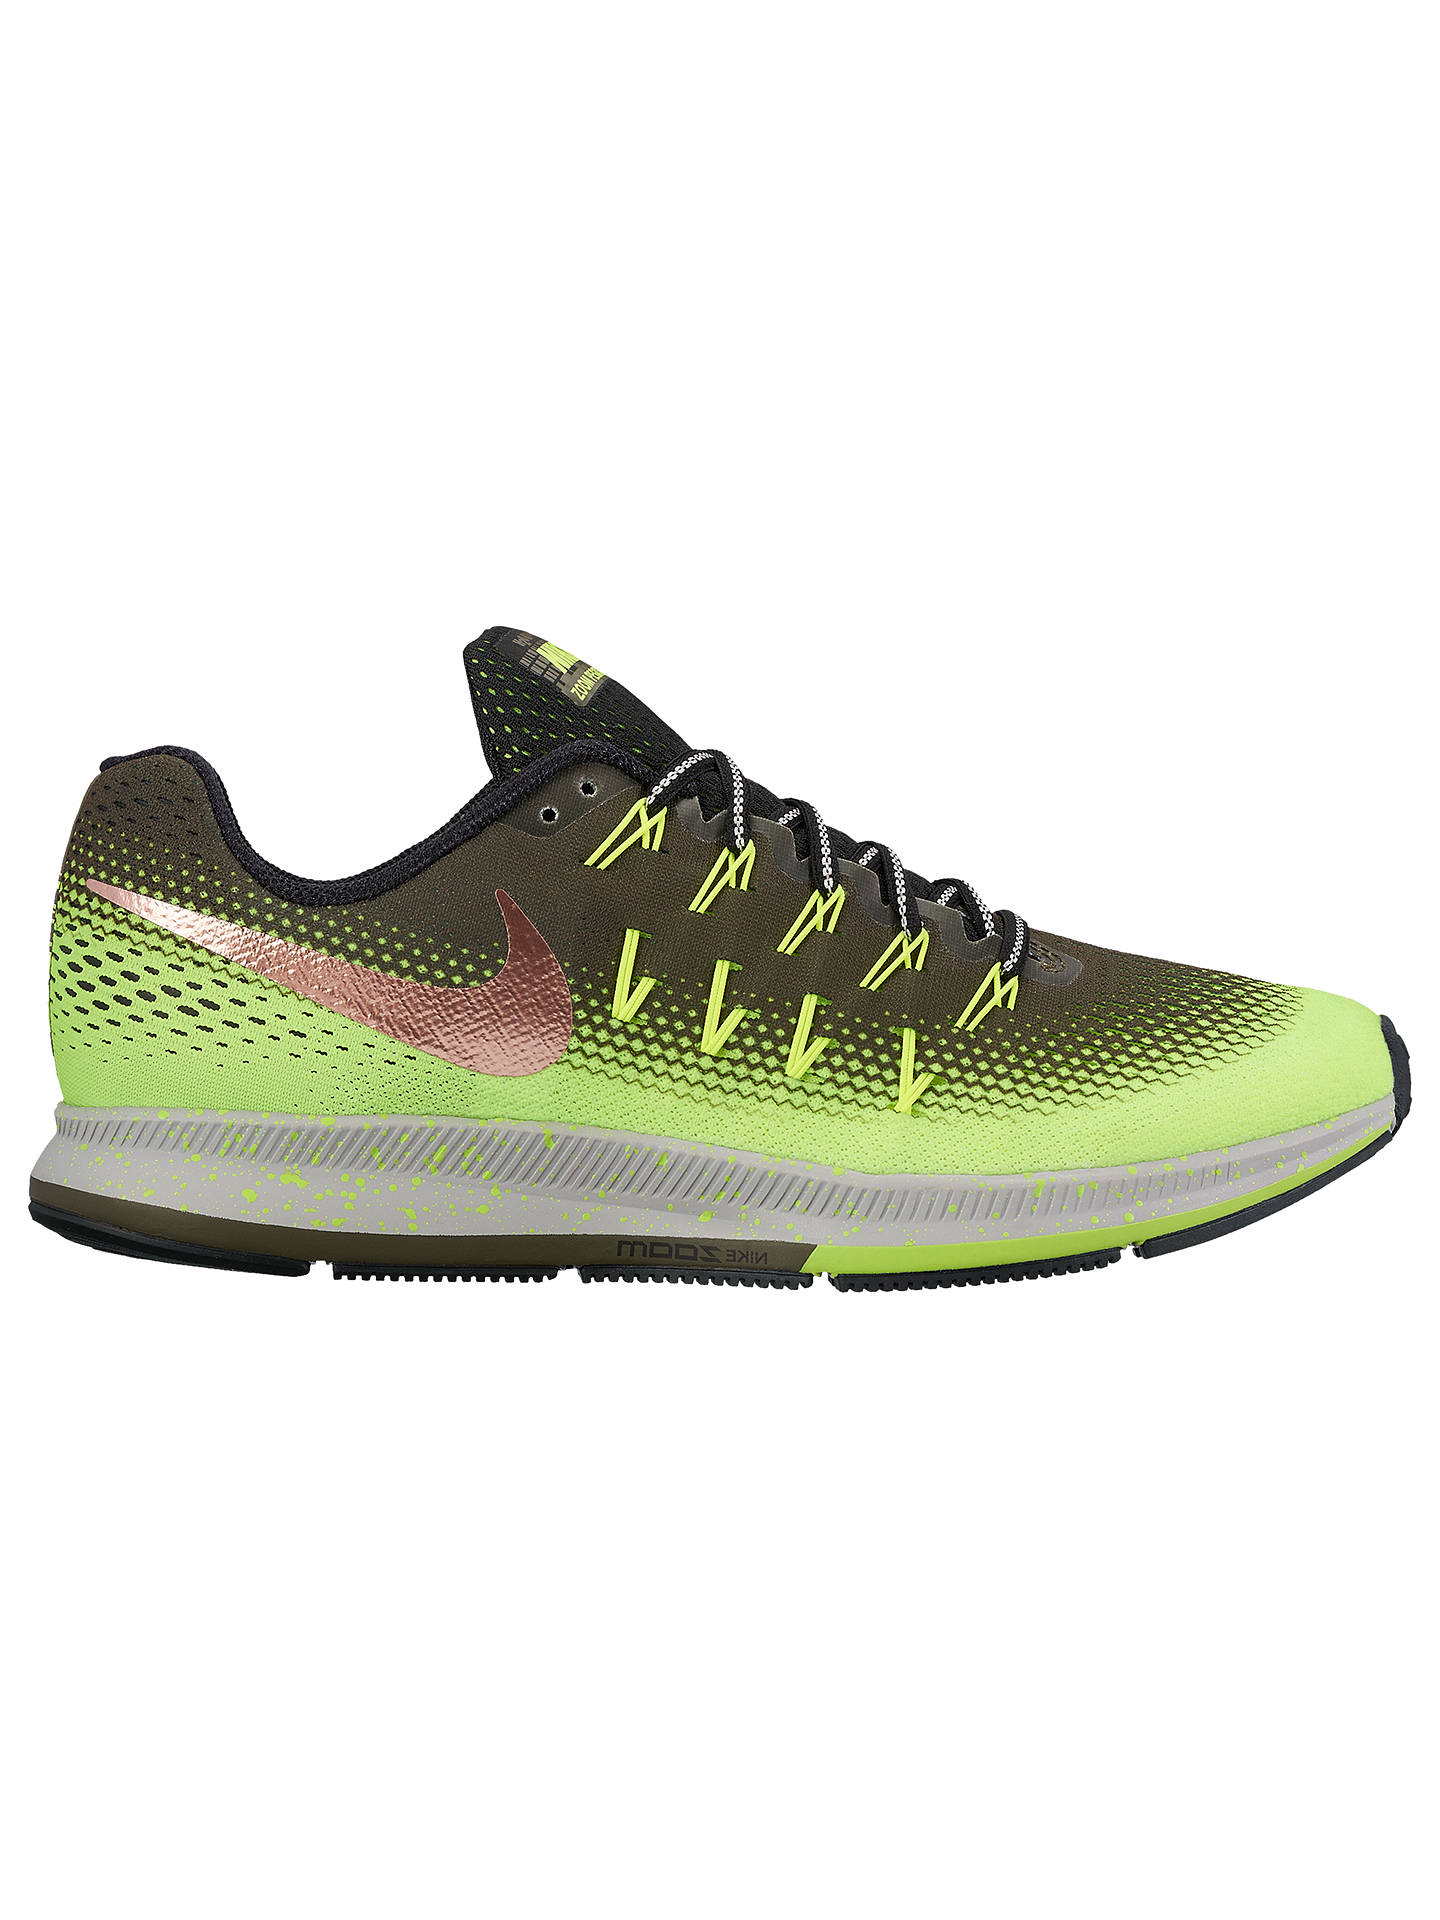 c1b9c9135dafe Buy Nike Air Zoom Pegasus 33 Shield Men s Running Shoes